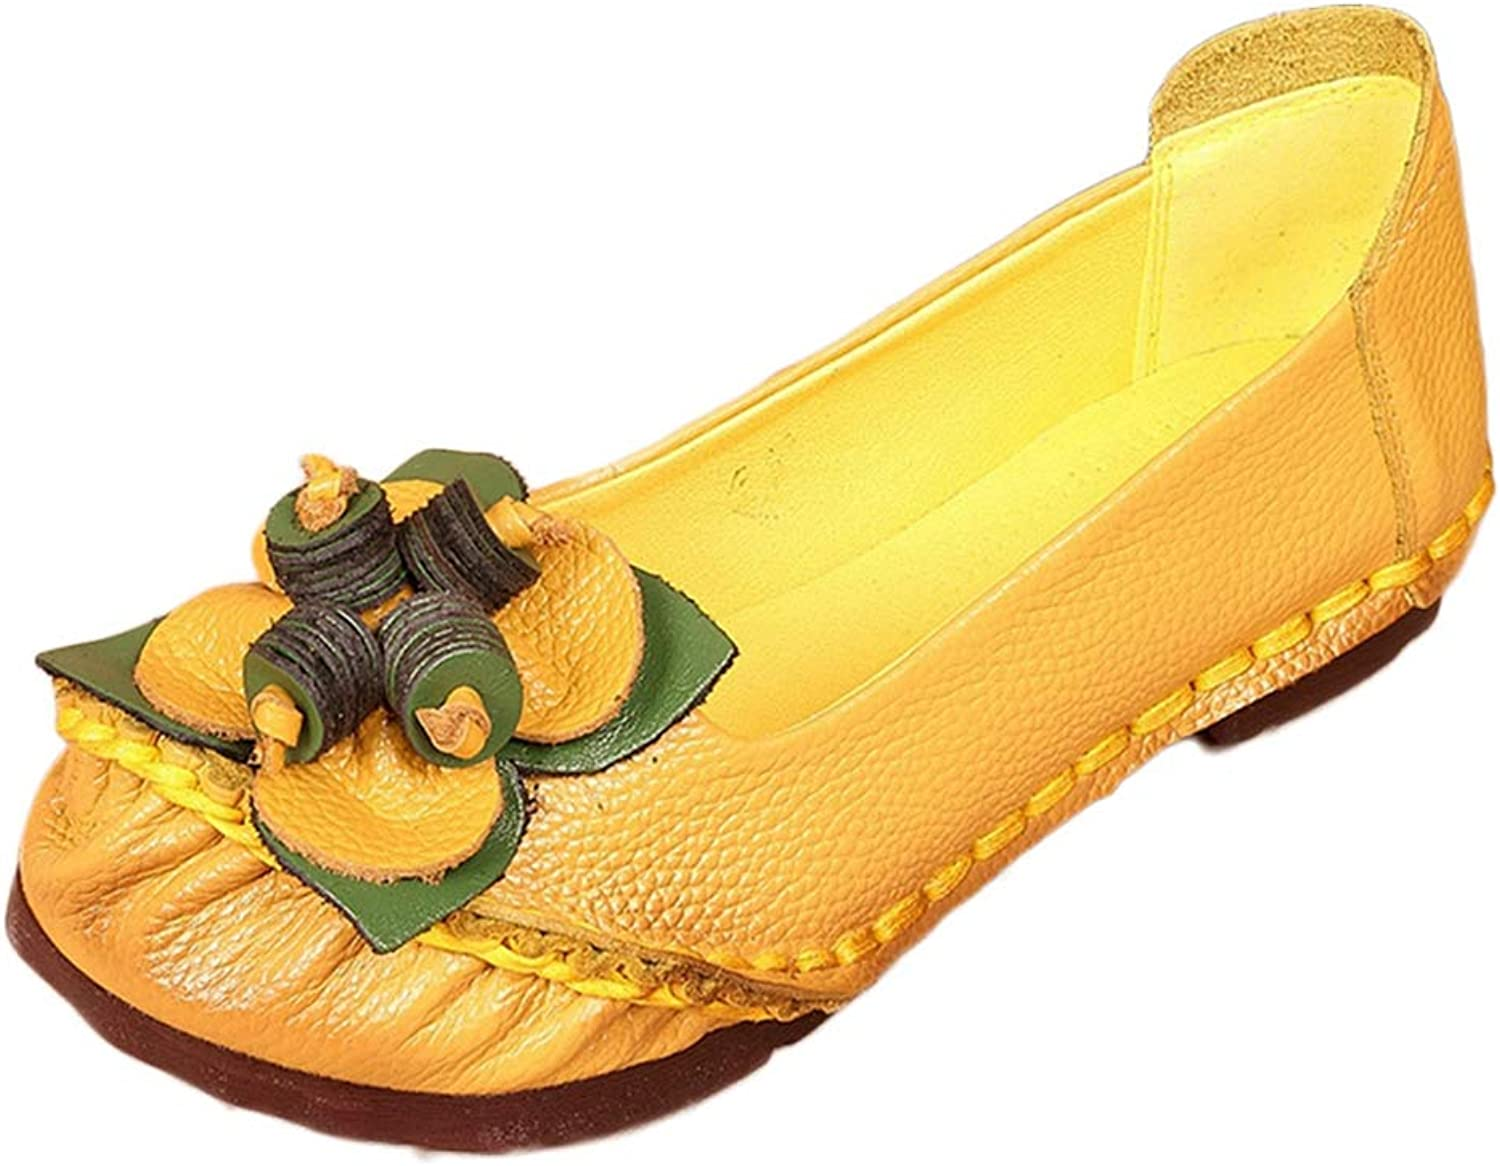 CYBLING Women's Comfort Leather Loafers Flower Slip On Driving Walking Flats Moccasins shoes